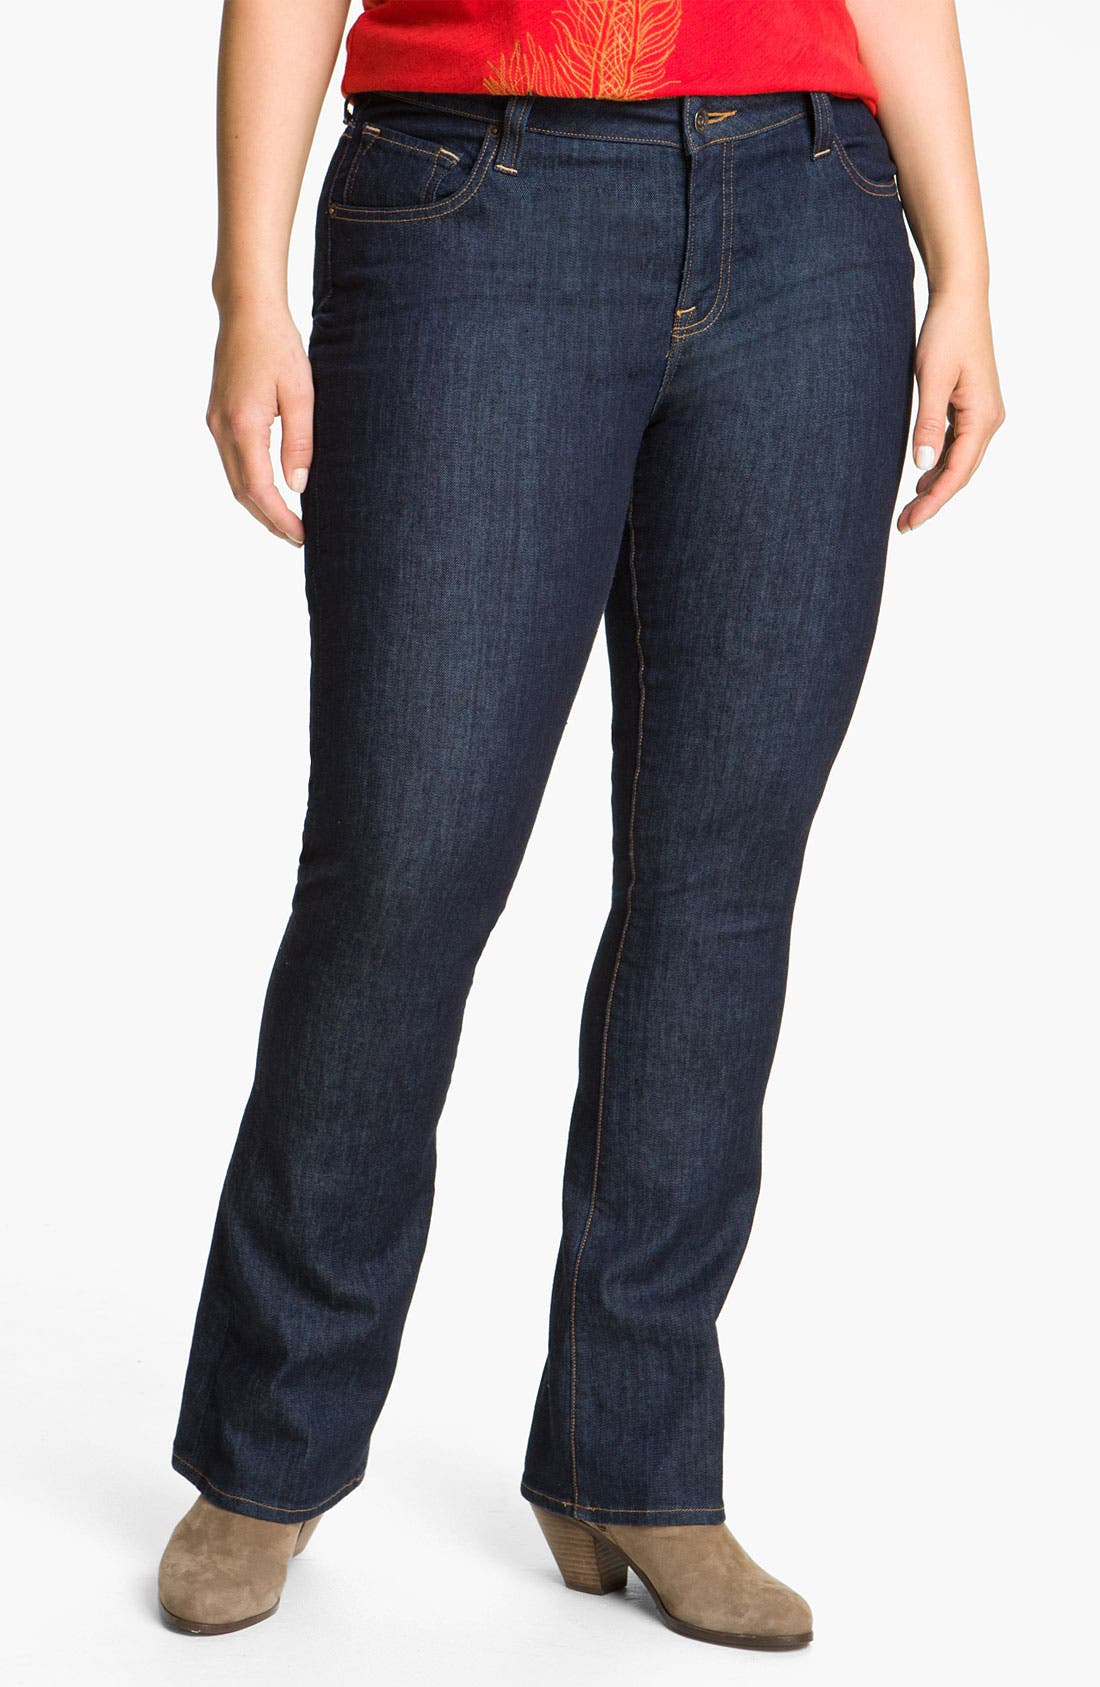 Alternate Image 1 Selected - Lucky Brand 'Ginger' Bootcut Jeans (Plus Size)